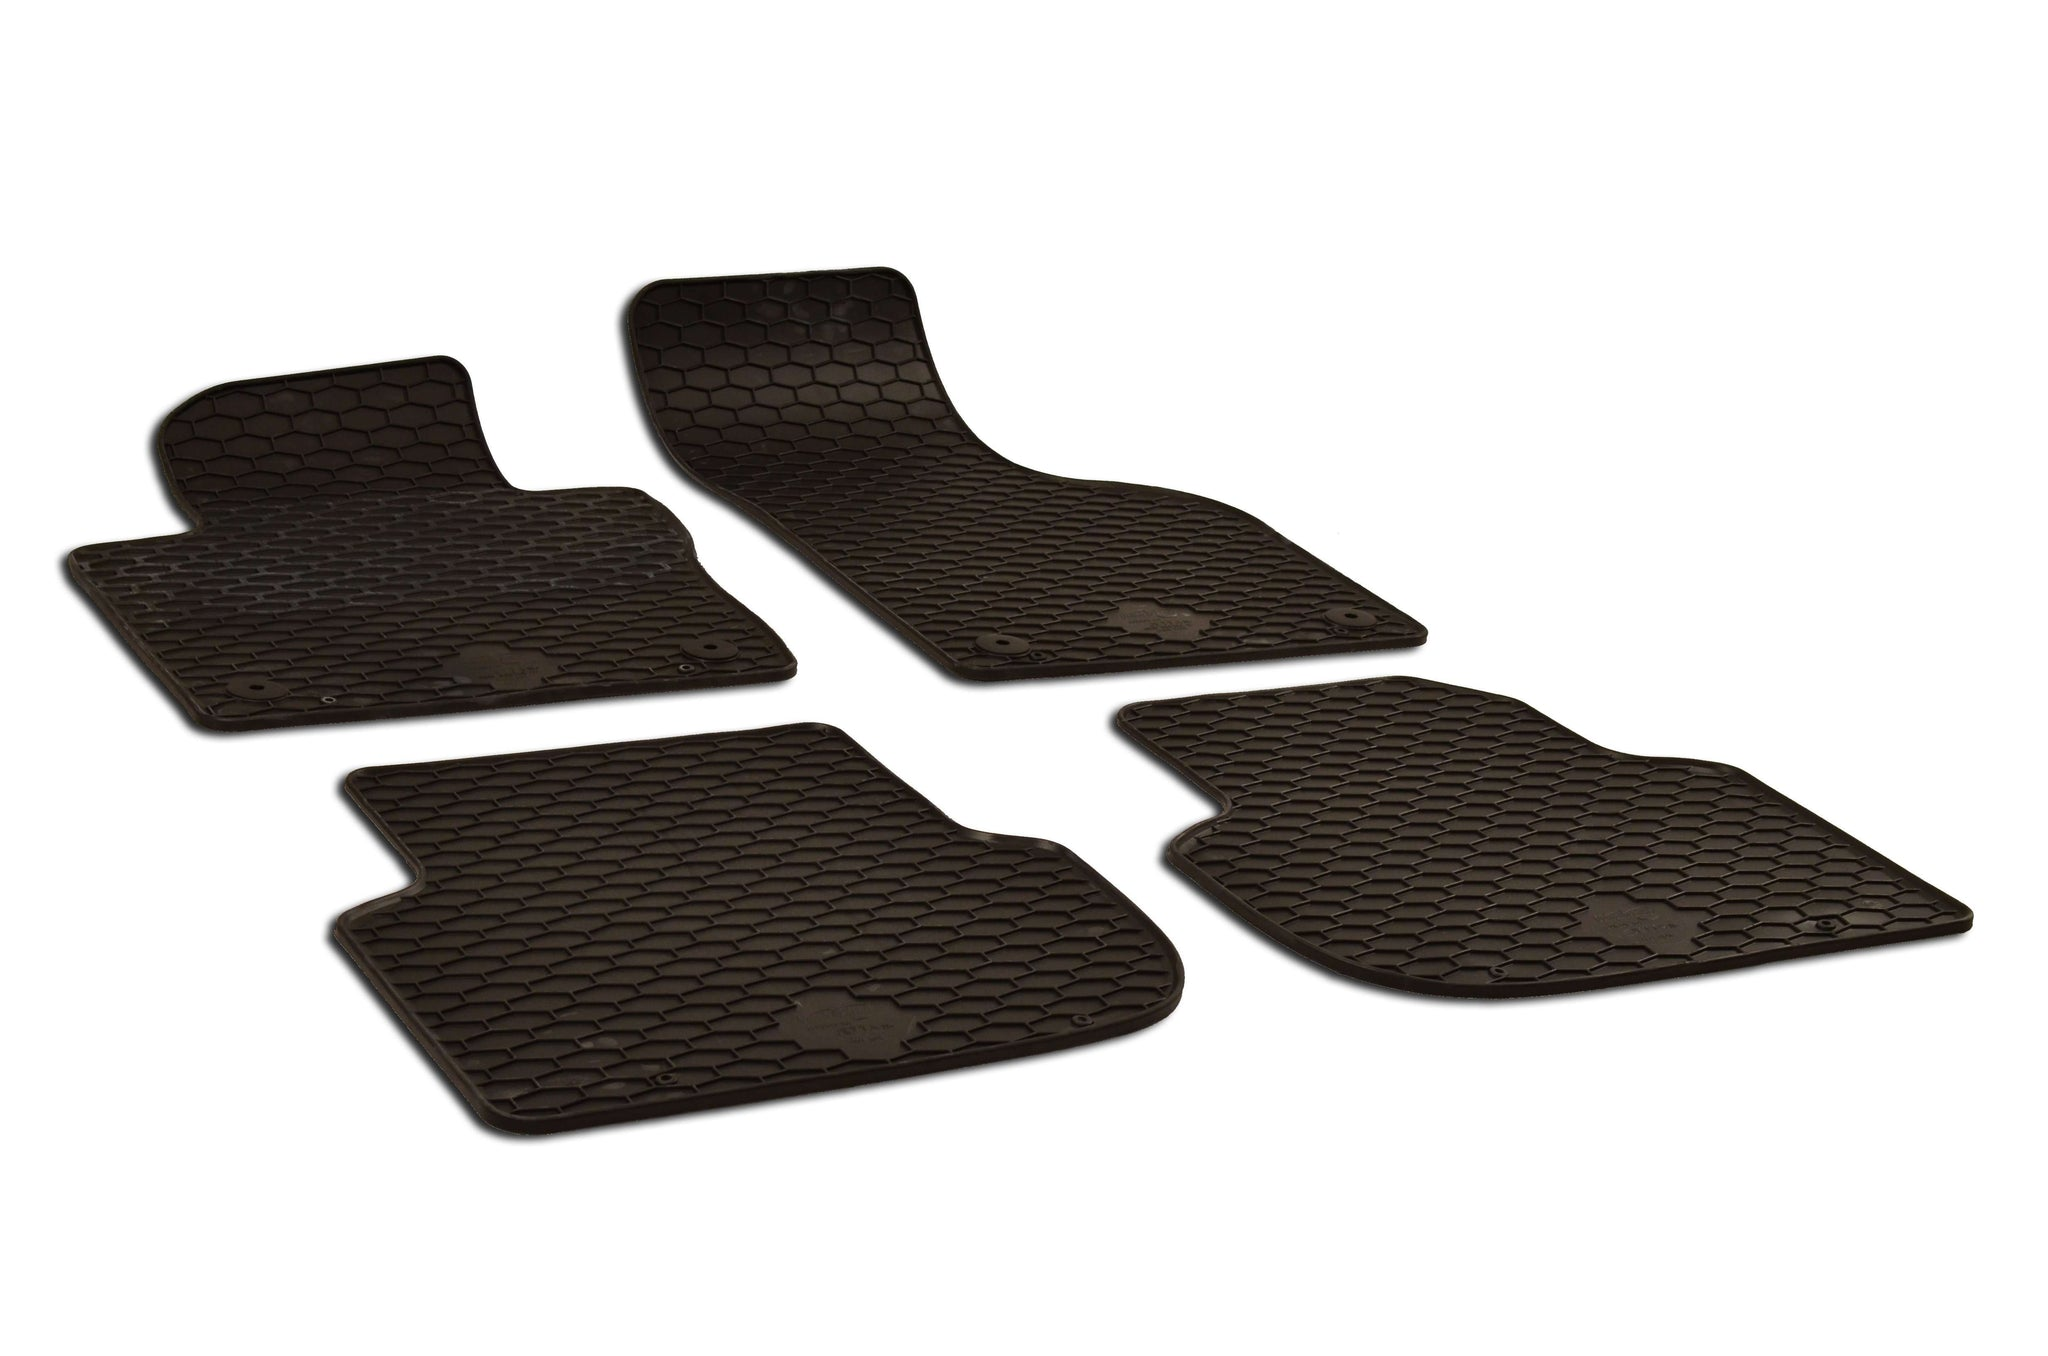 Volkswagen Jetta 2019 Set of 4 Black Rubber OE Fit All Weather Car Floor Mats